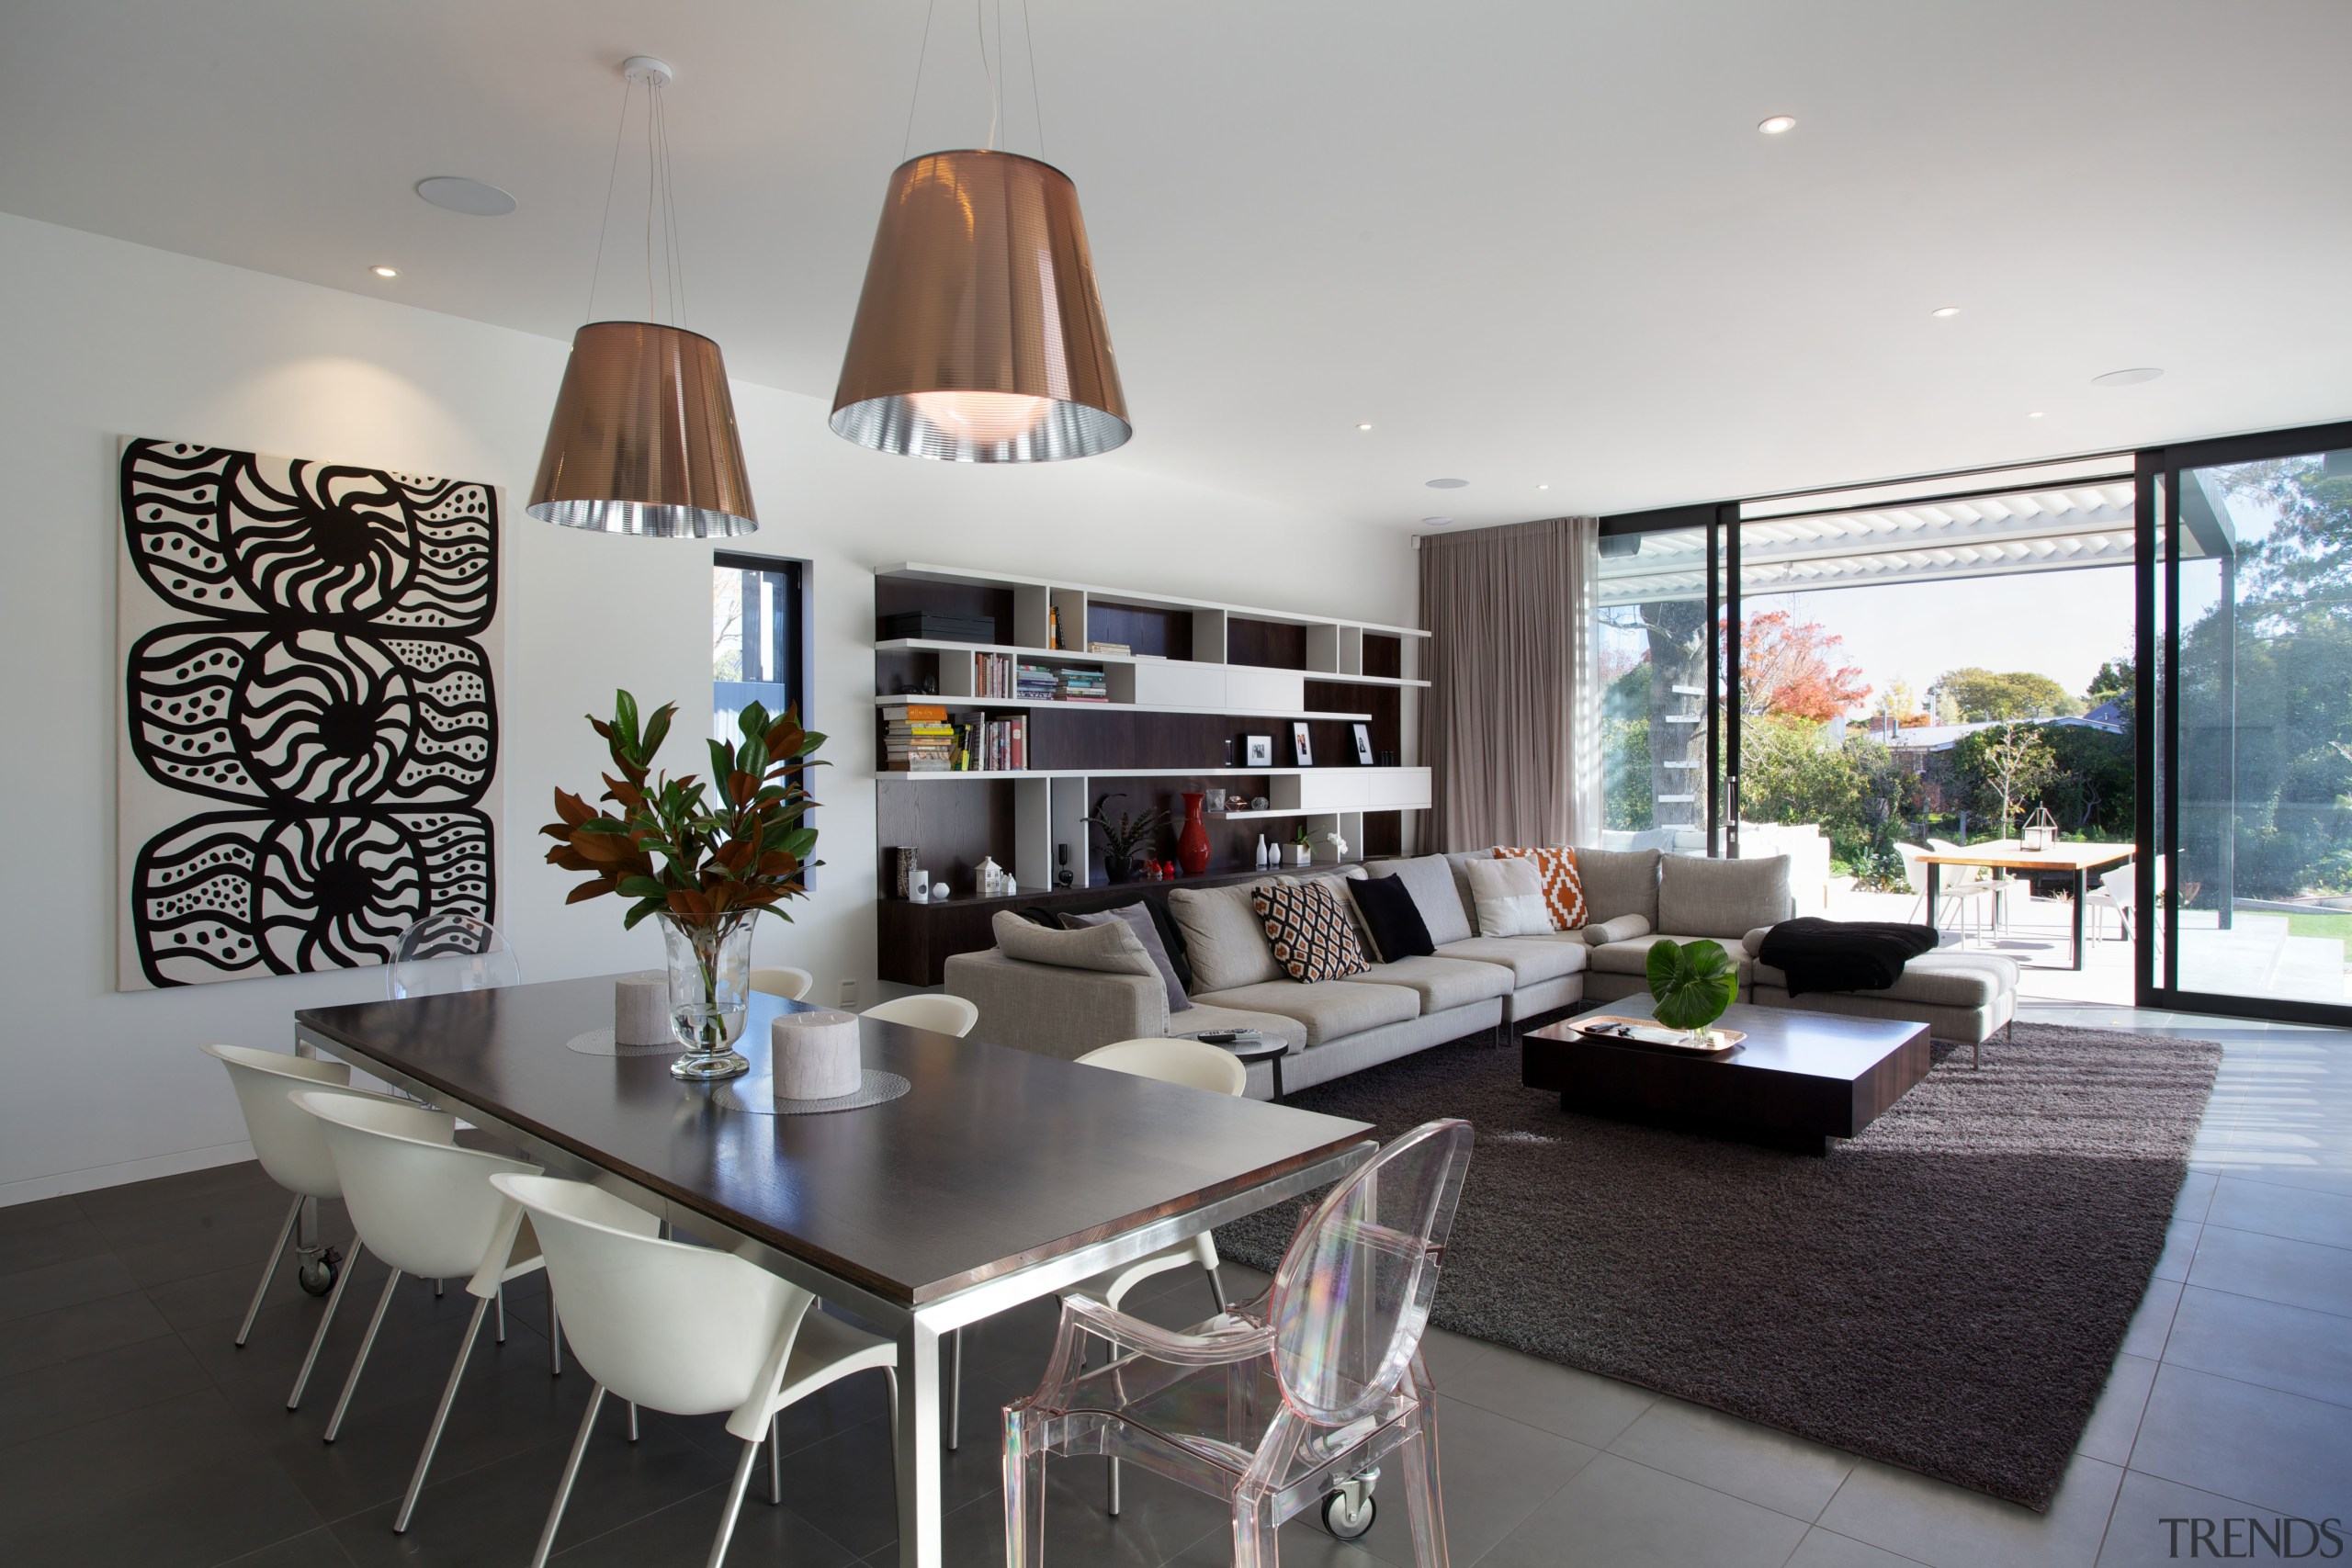 This family living area is in a new ceiling, house, interior design, living room, real estate, room, table, gray